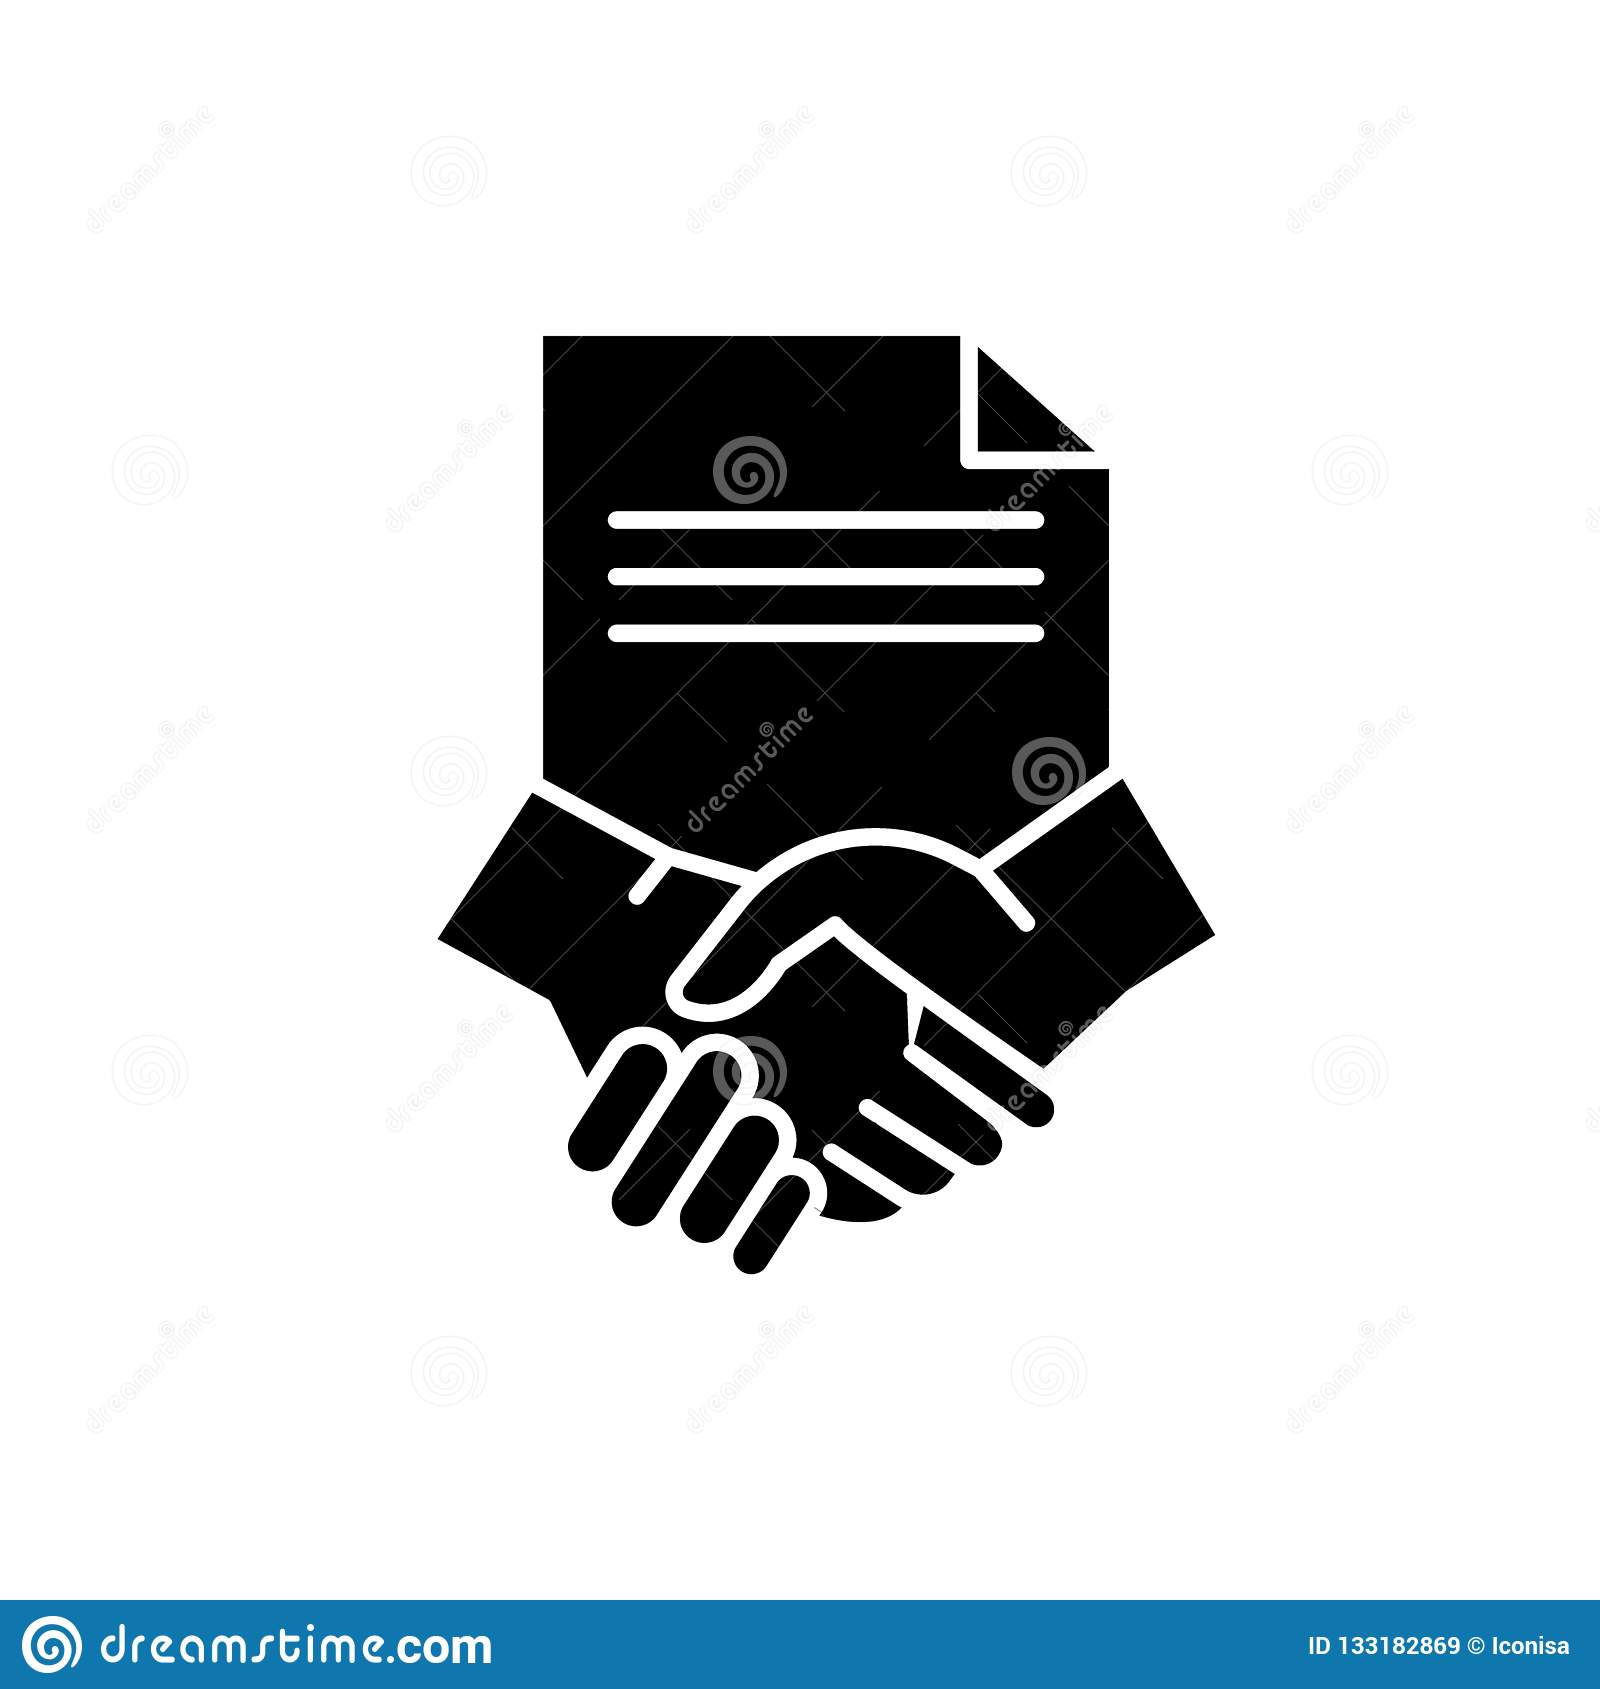 Conclusion of a contract black icon, vector sign on isolated background. Conclusion of a contract concept symbol